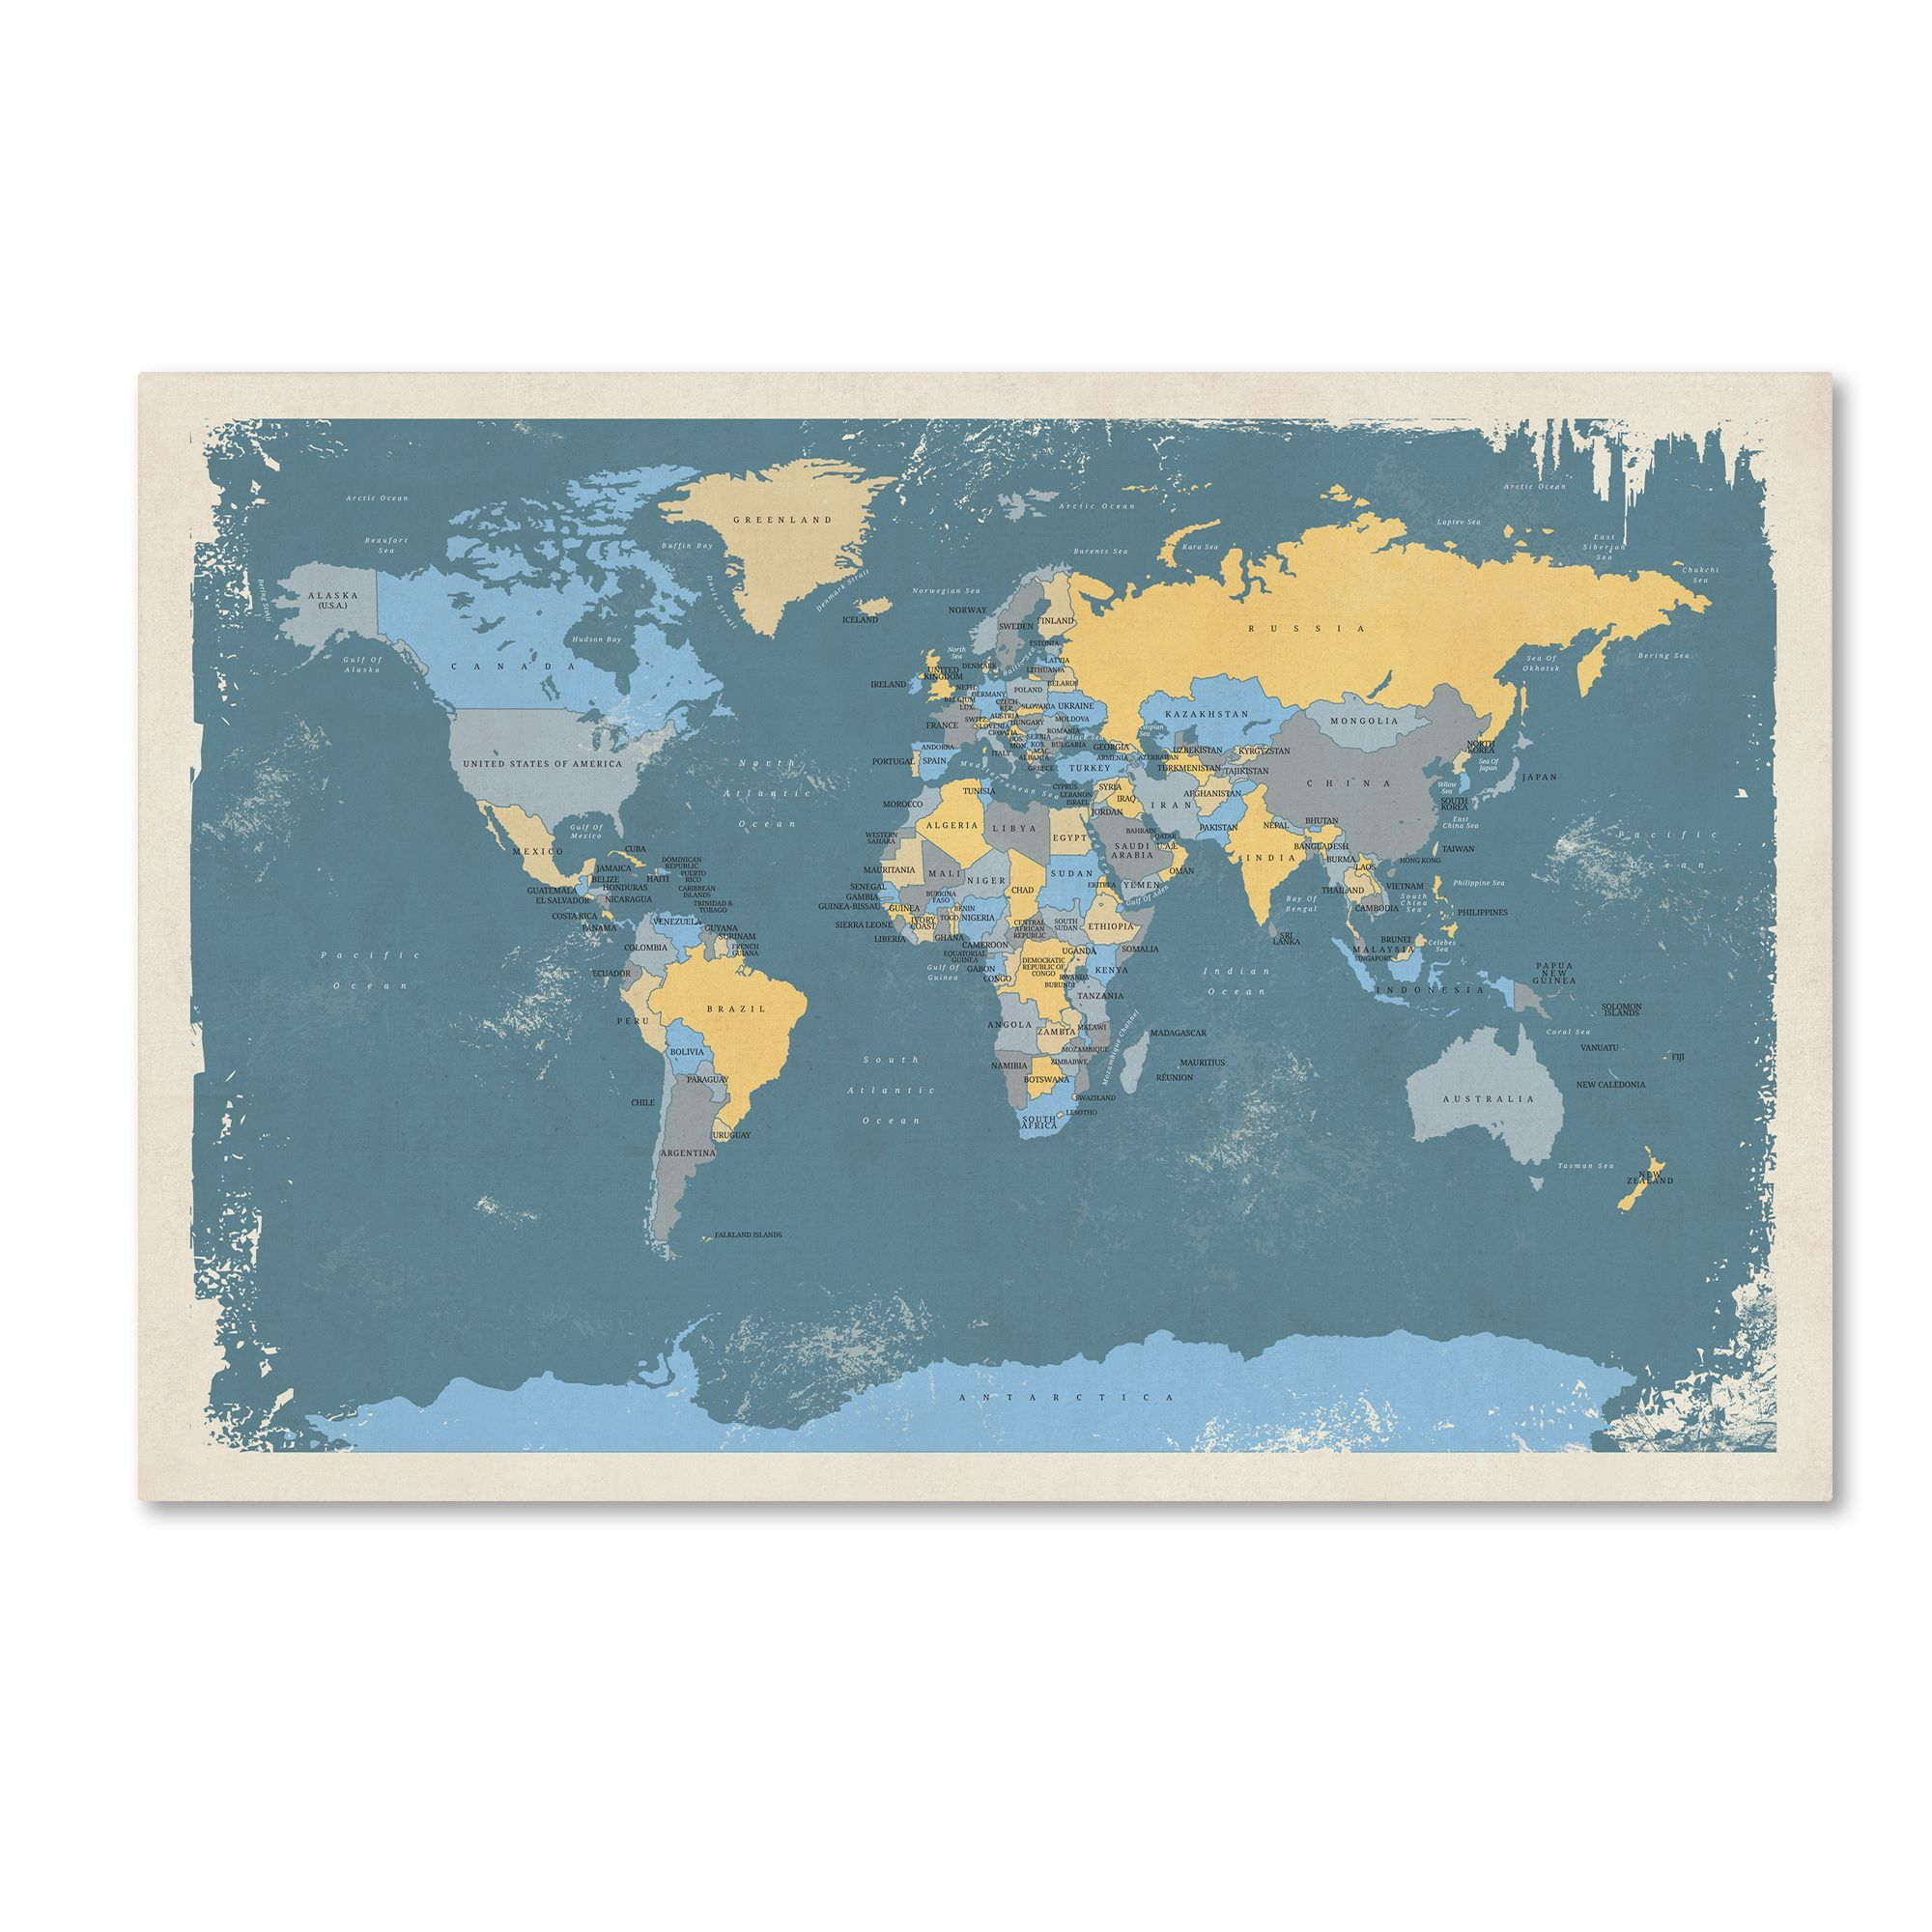 Michael tompsett retro political map of the world canvas wall art michael tompsett retro political map of the world canvas wall art gumiabroncs Image collections